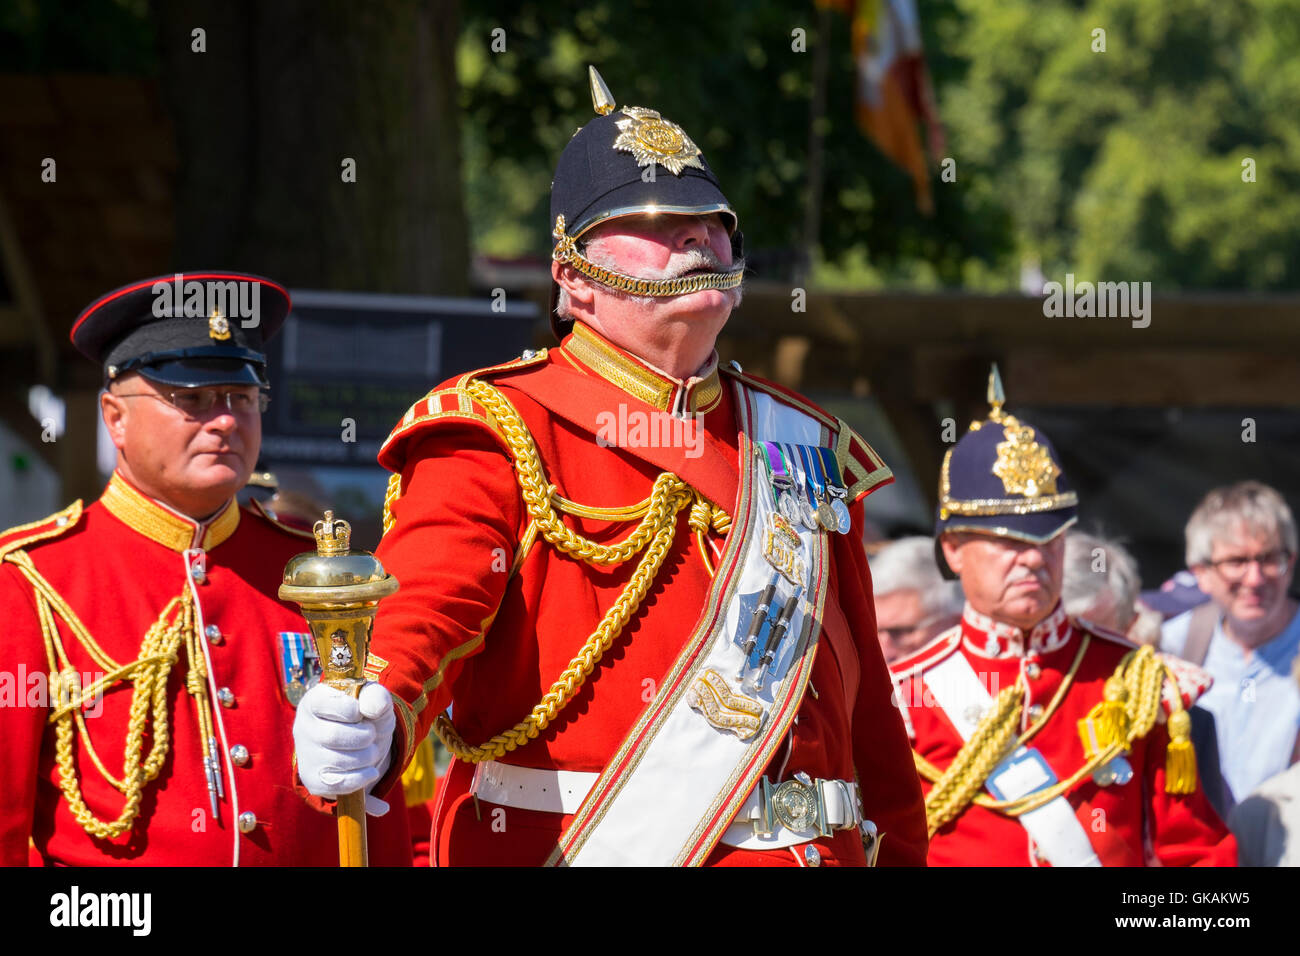 Members of Yorkshire Volunteers Band at the opening of Shrewsbury Flower Show in the Quarry, Shropshire, England, Stock Photo